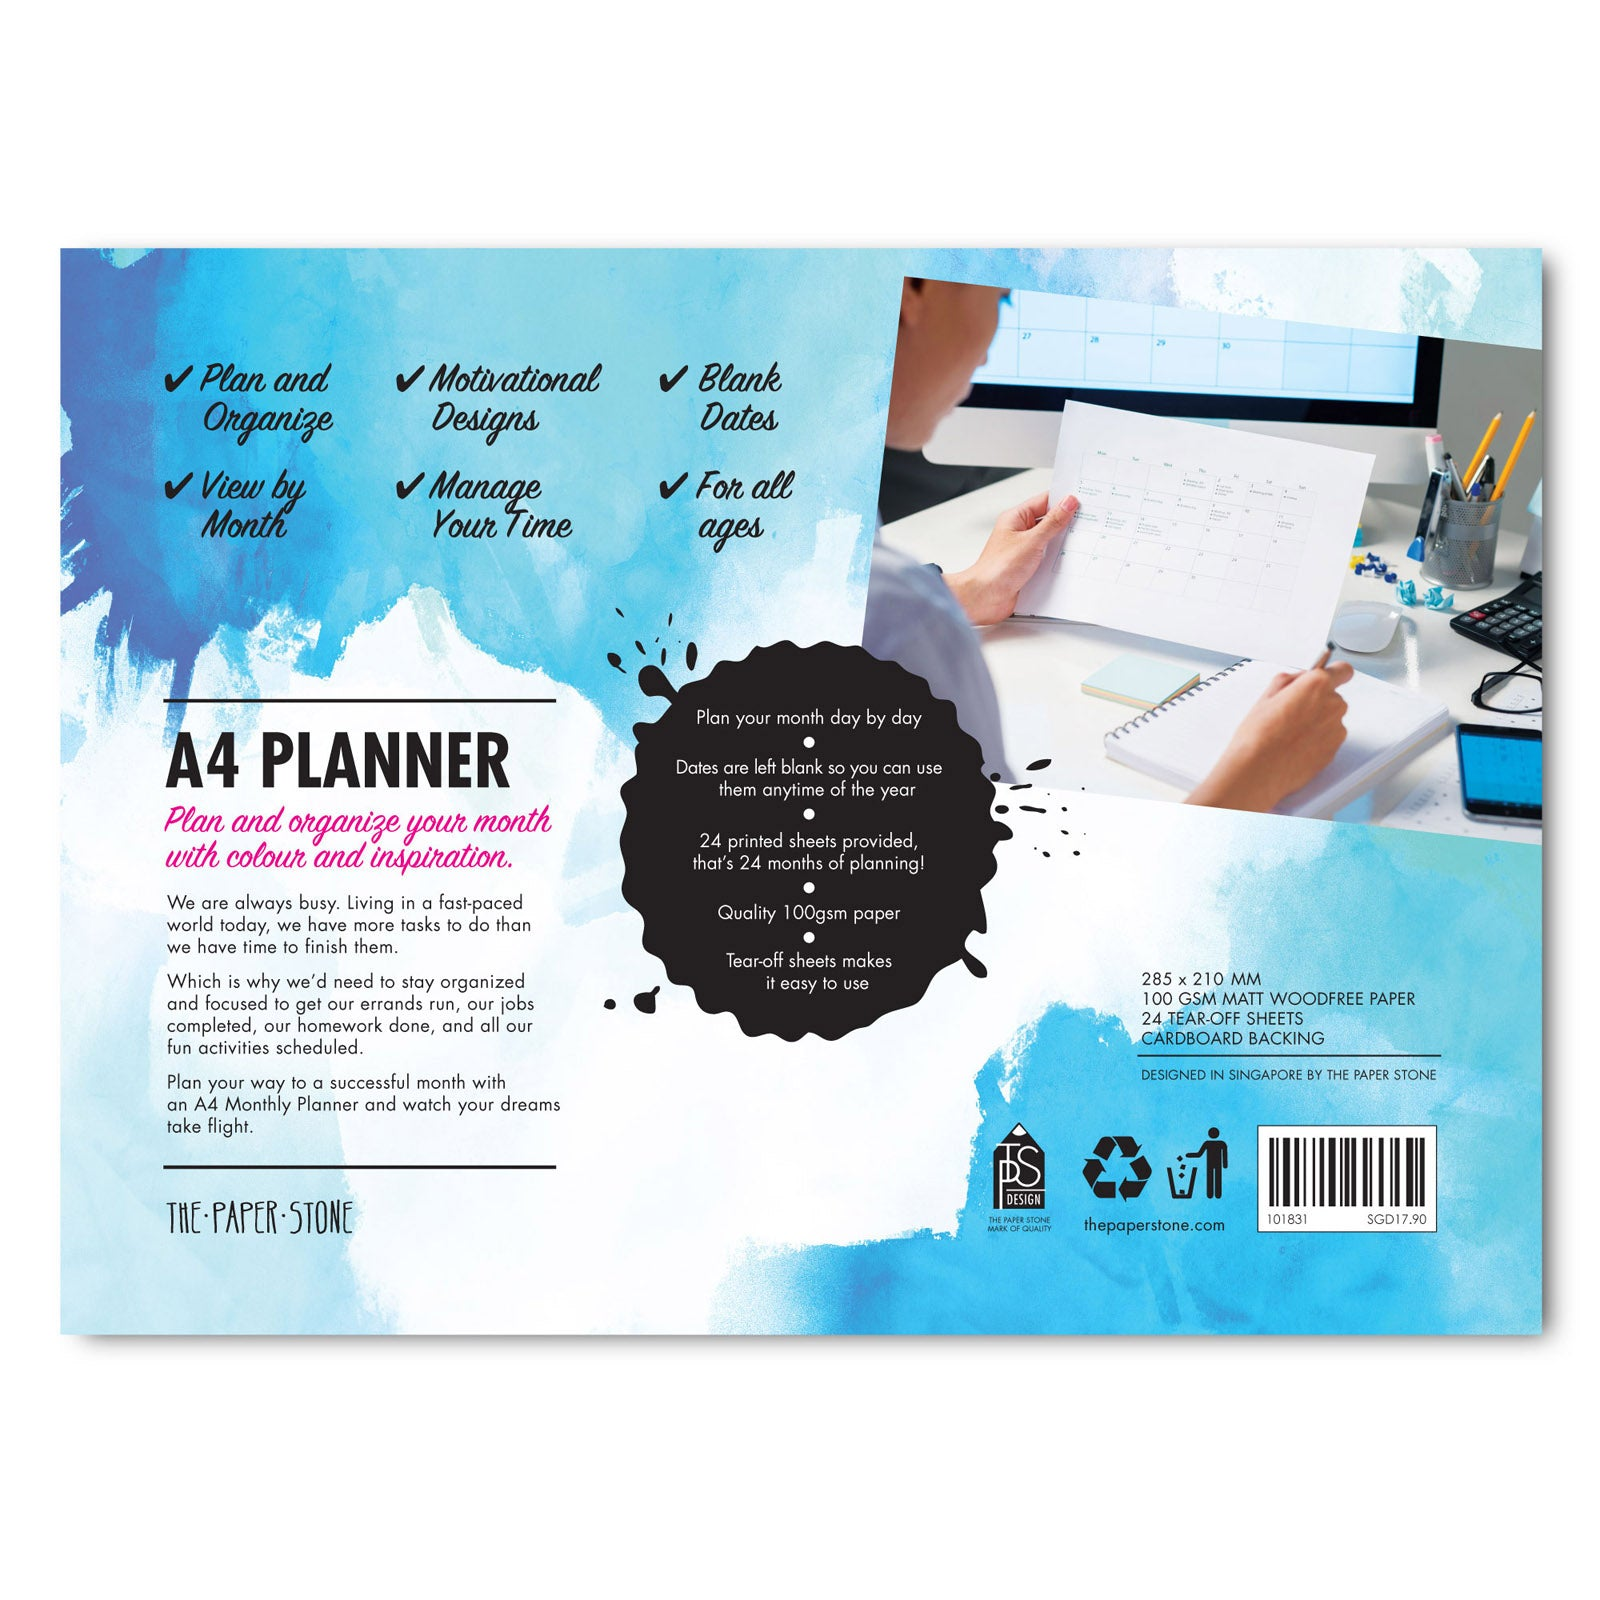 A4 Planner - Live A Life You Love Paintswash